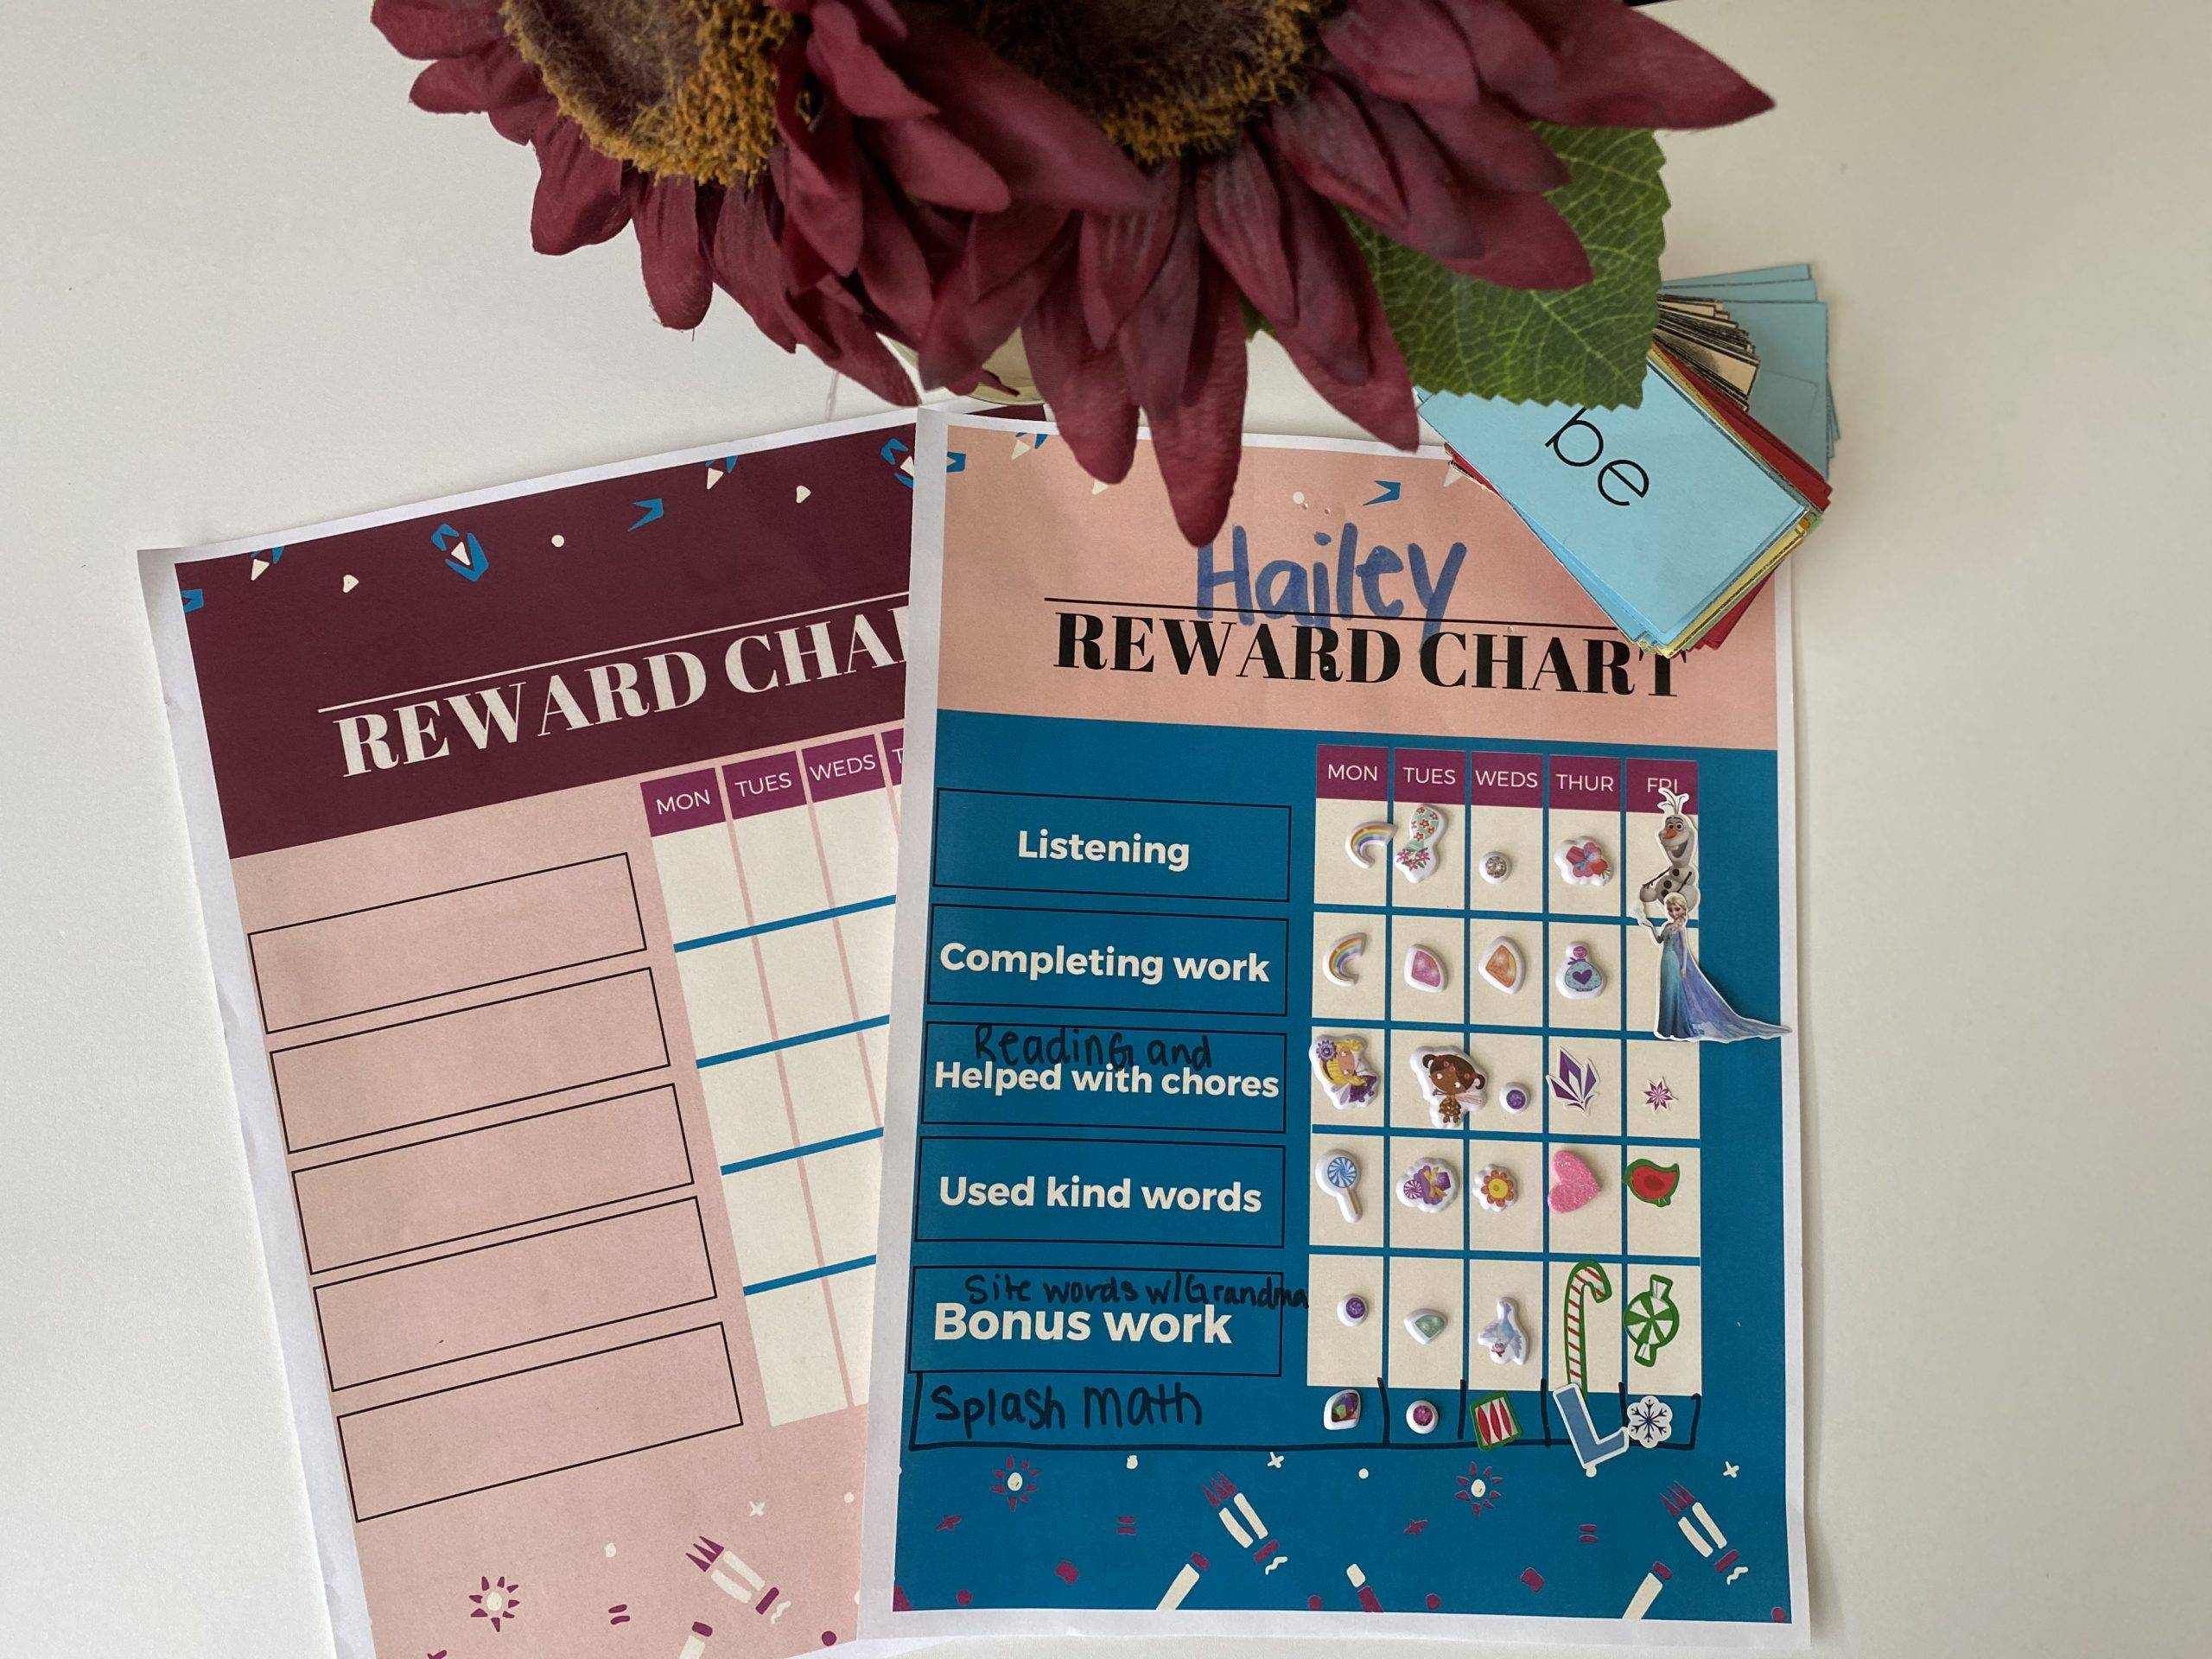 downloadable and printable reward chart for kids